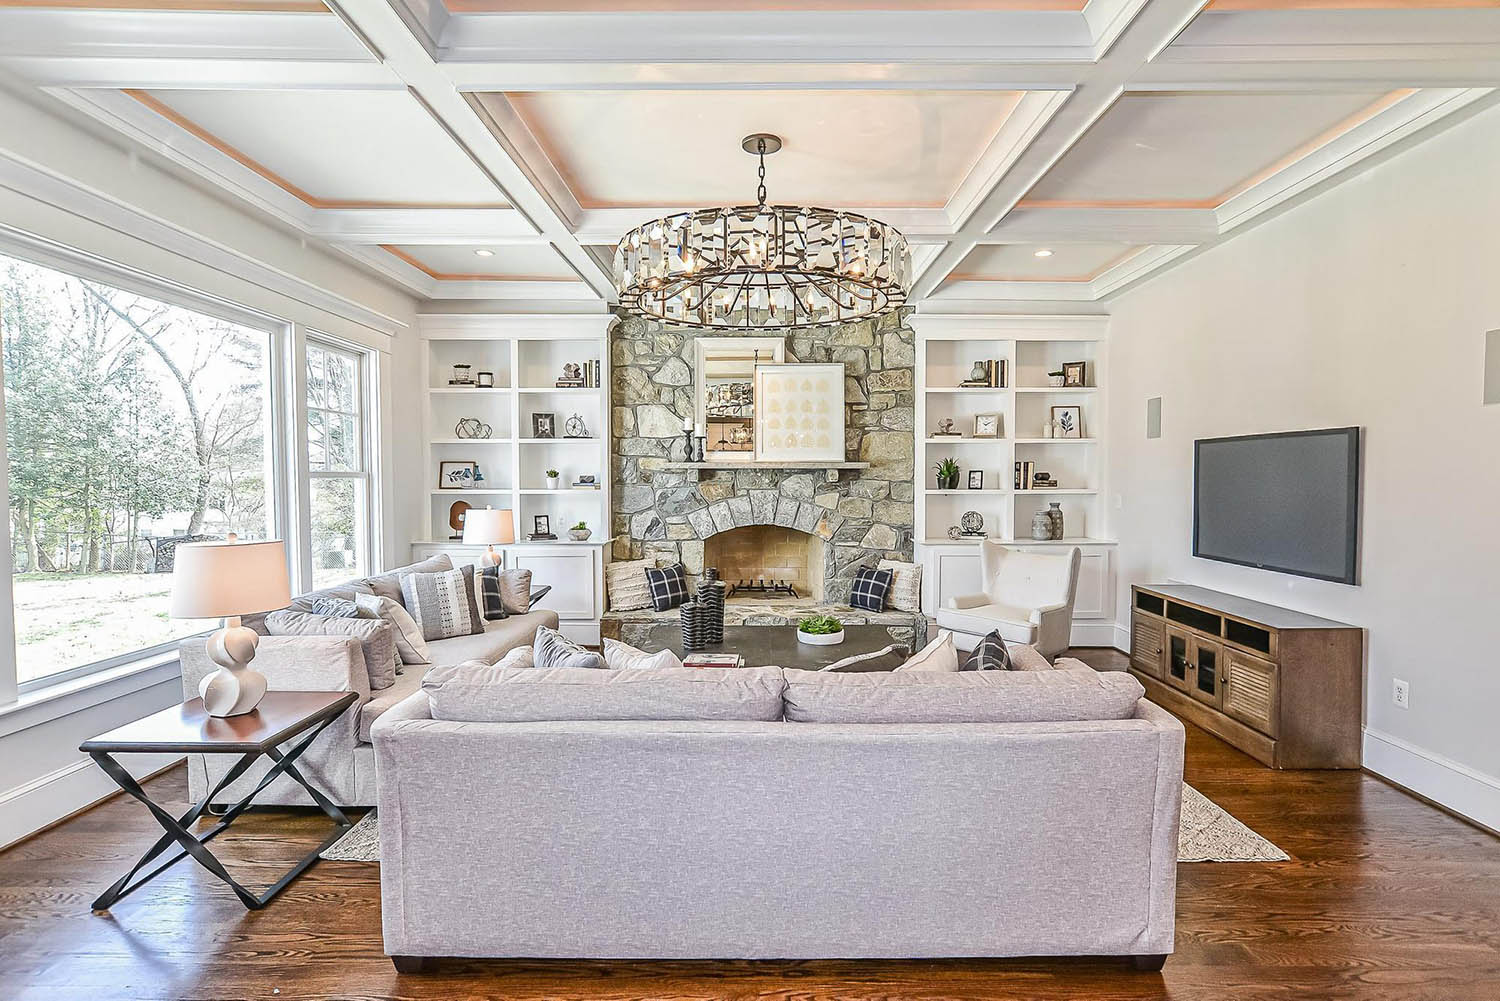 living room coffered ceiling with grid design and center chandelier real stone veneer fireplace